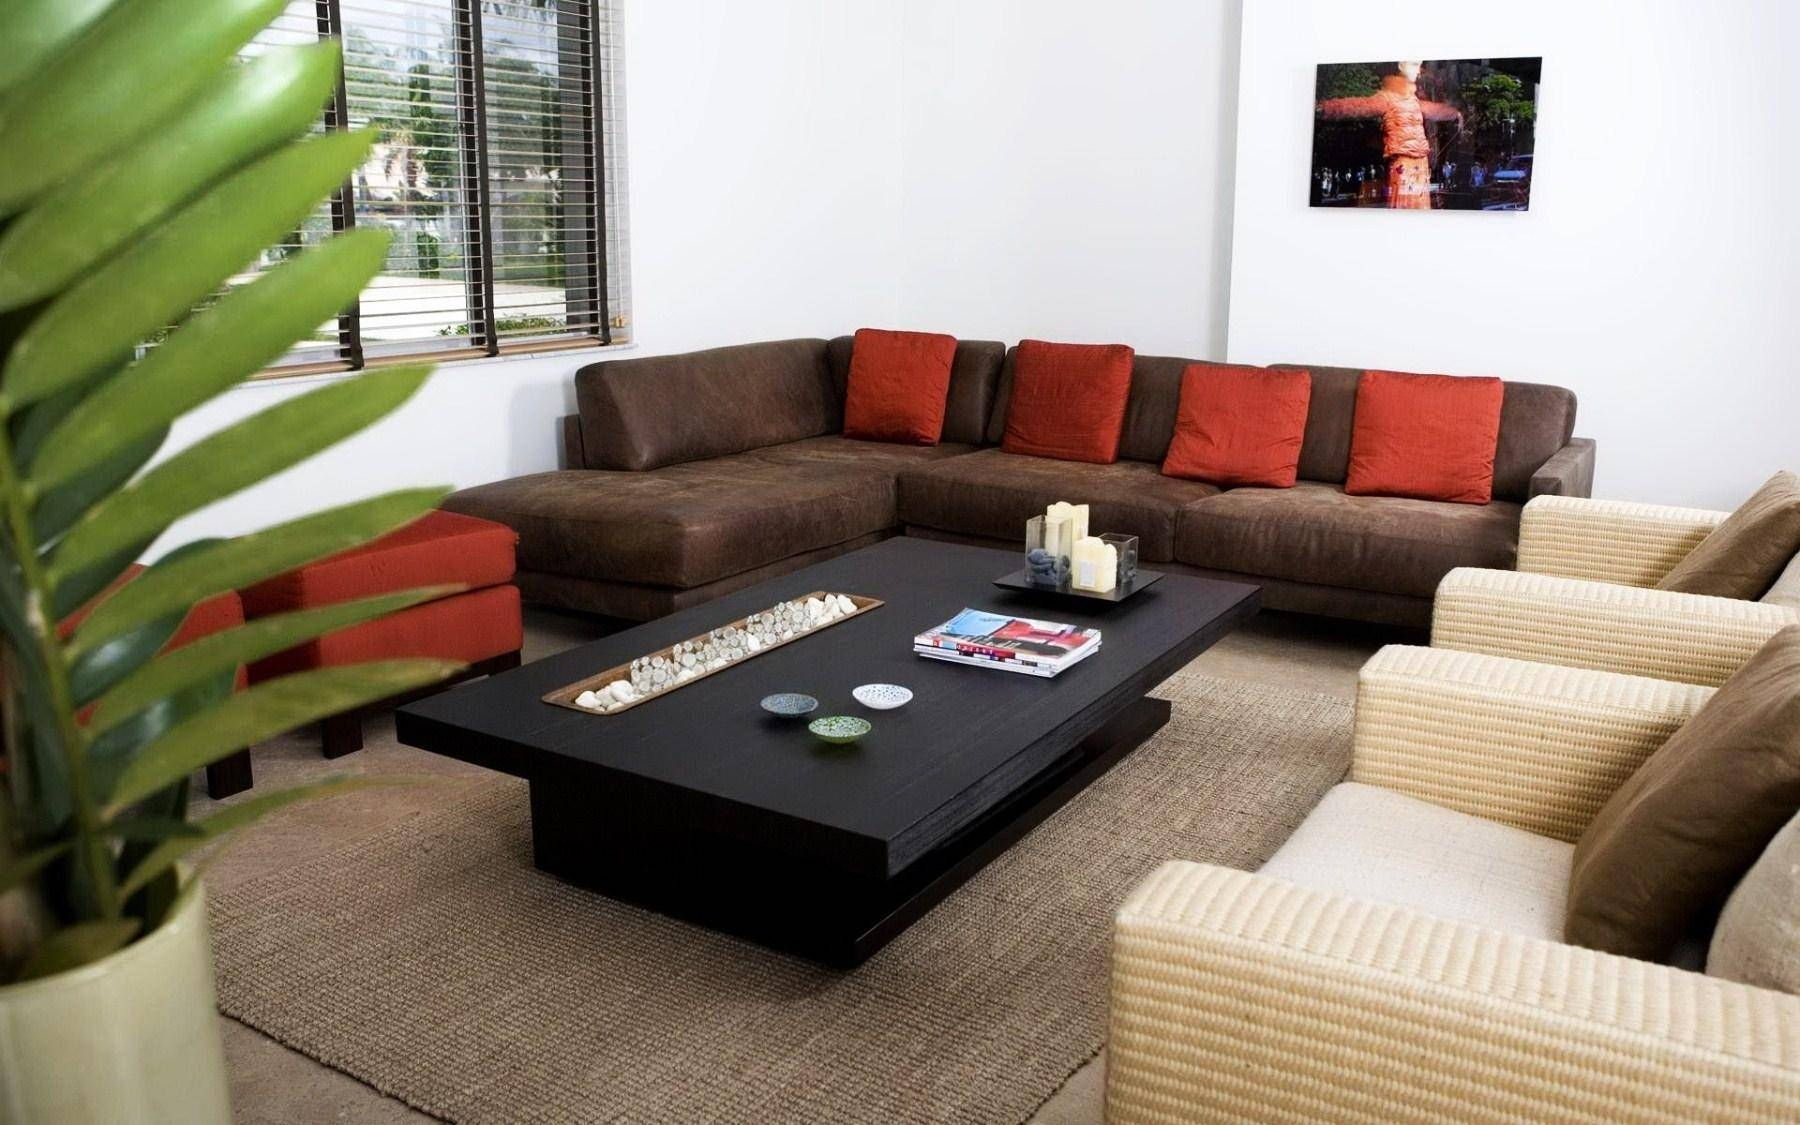 20 Best Brown Sofas Decorating | Sofa Ideas With Brown Sofas Decorating (Photo 12 of 15)